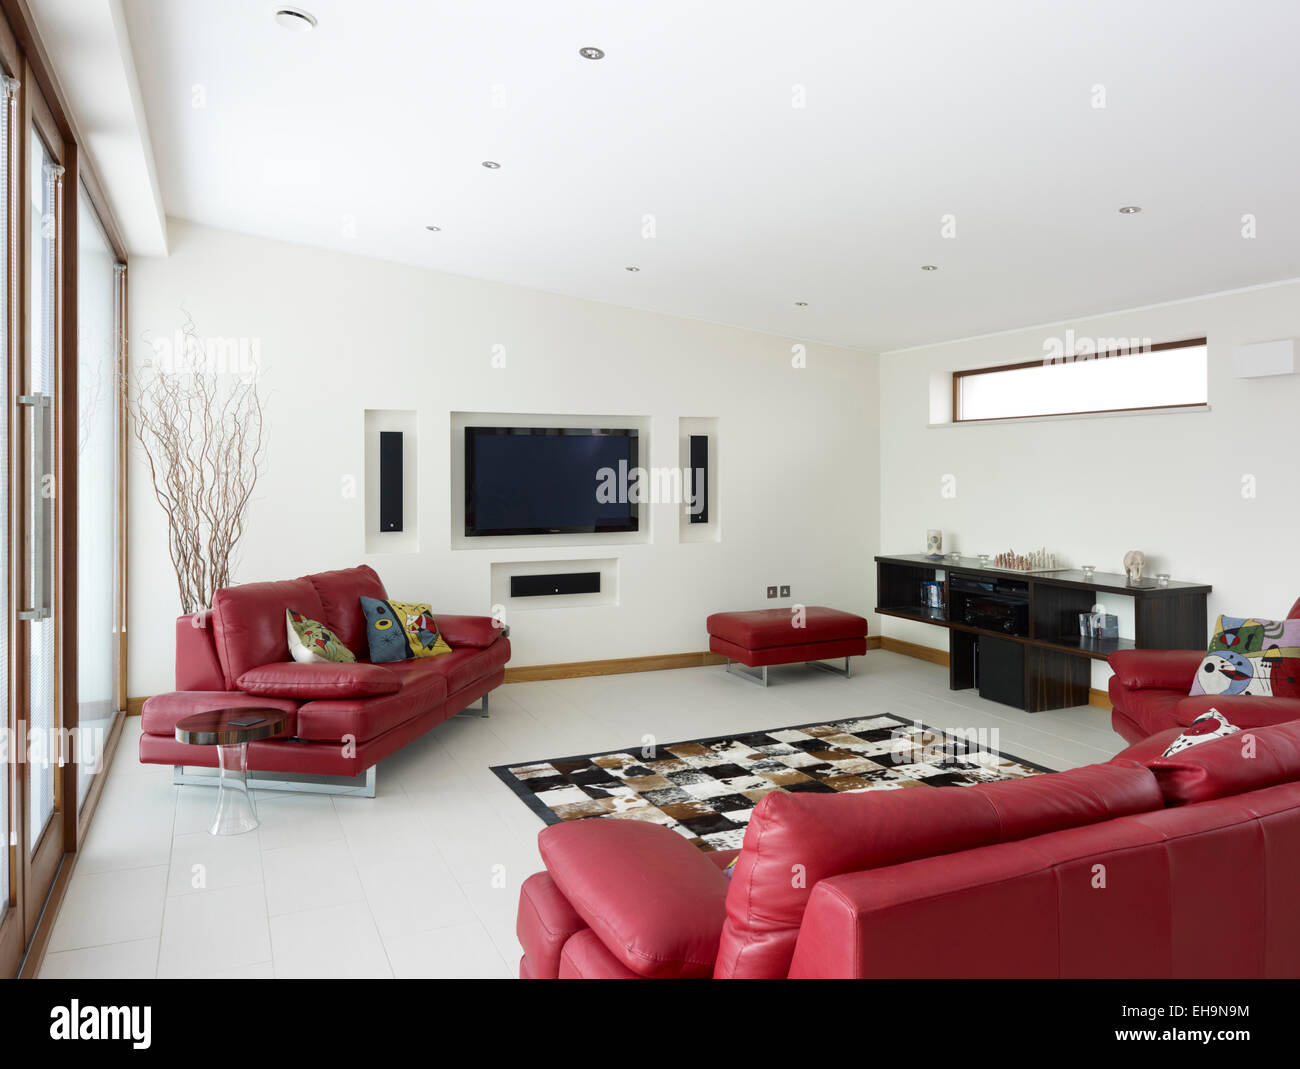 Modern living room with red leather sofas and built in plasma TV and ...